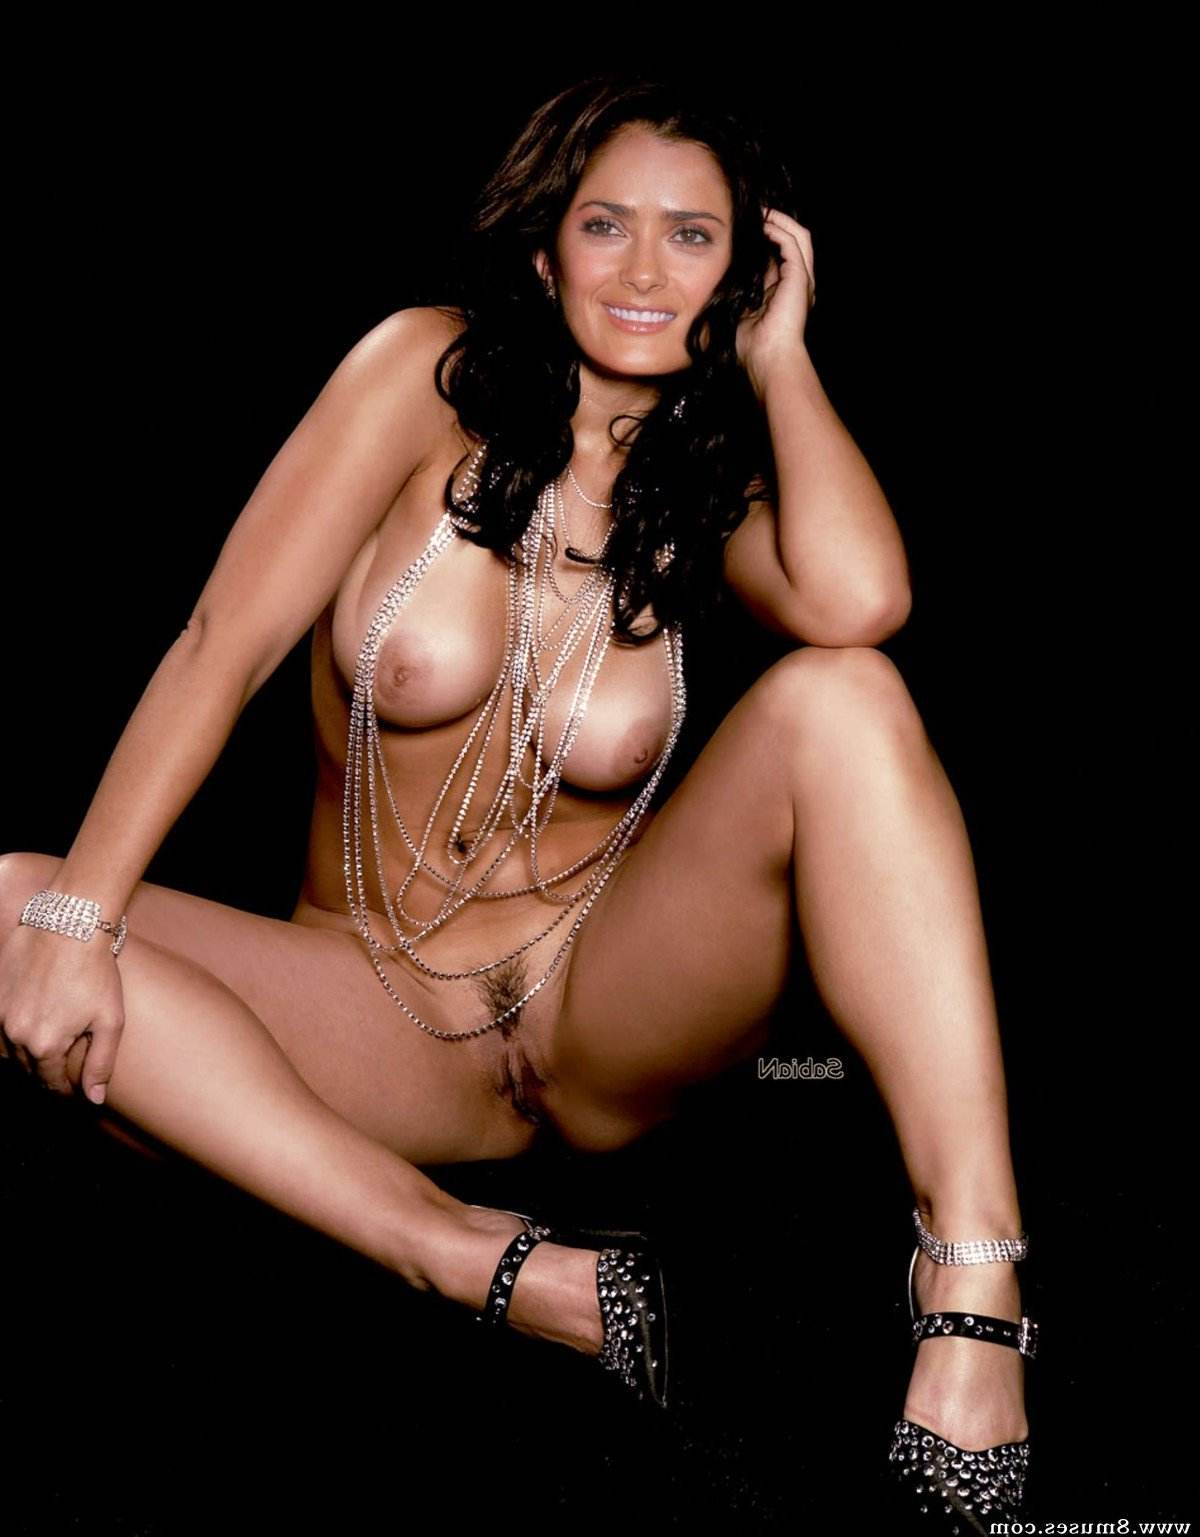 Fake-Celebrities-Sex-Pictures/Salma-Hayek Salma_Hayek__8muses_-_Sex_and_Porn_Comics_115.jpg